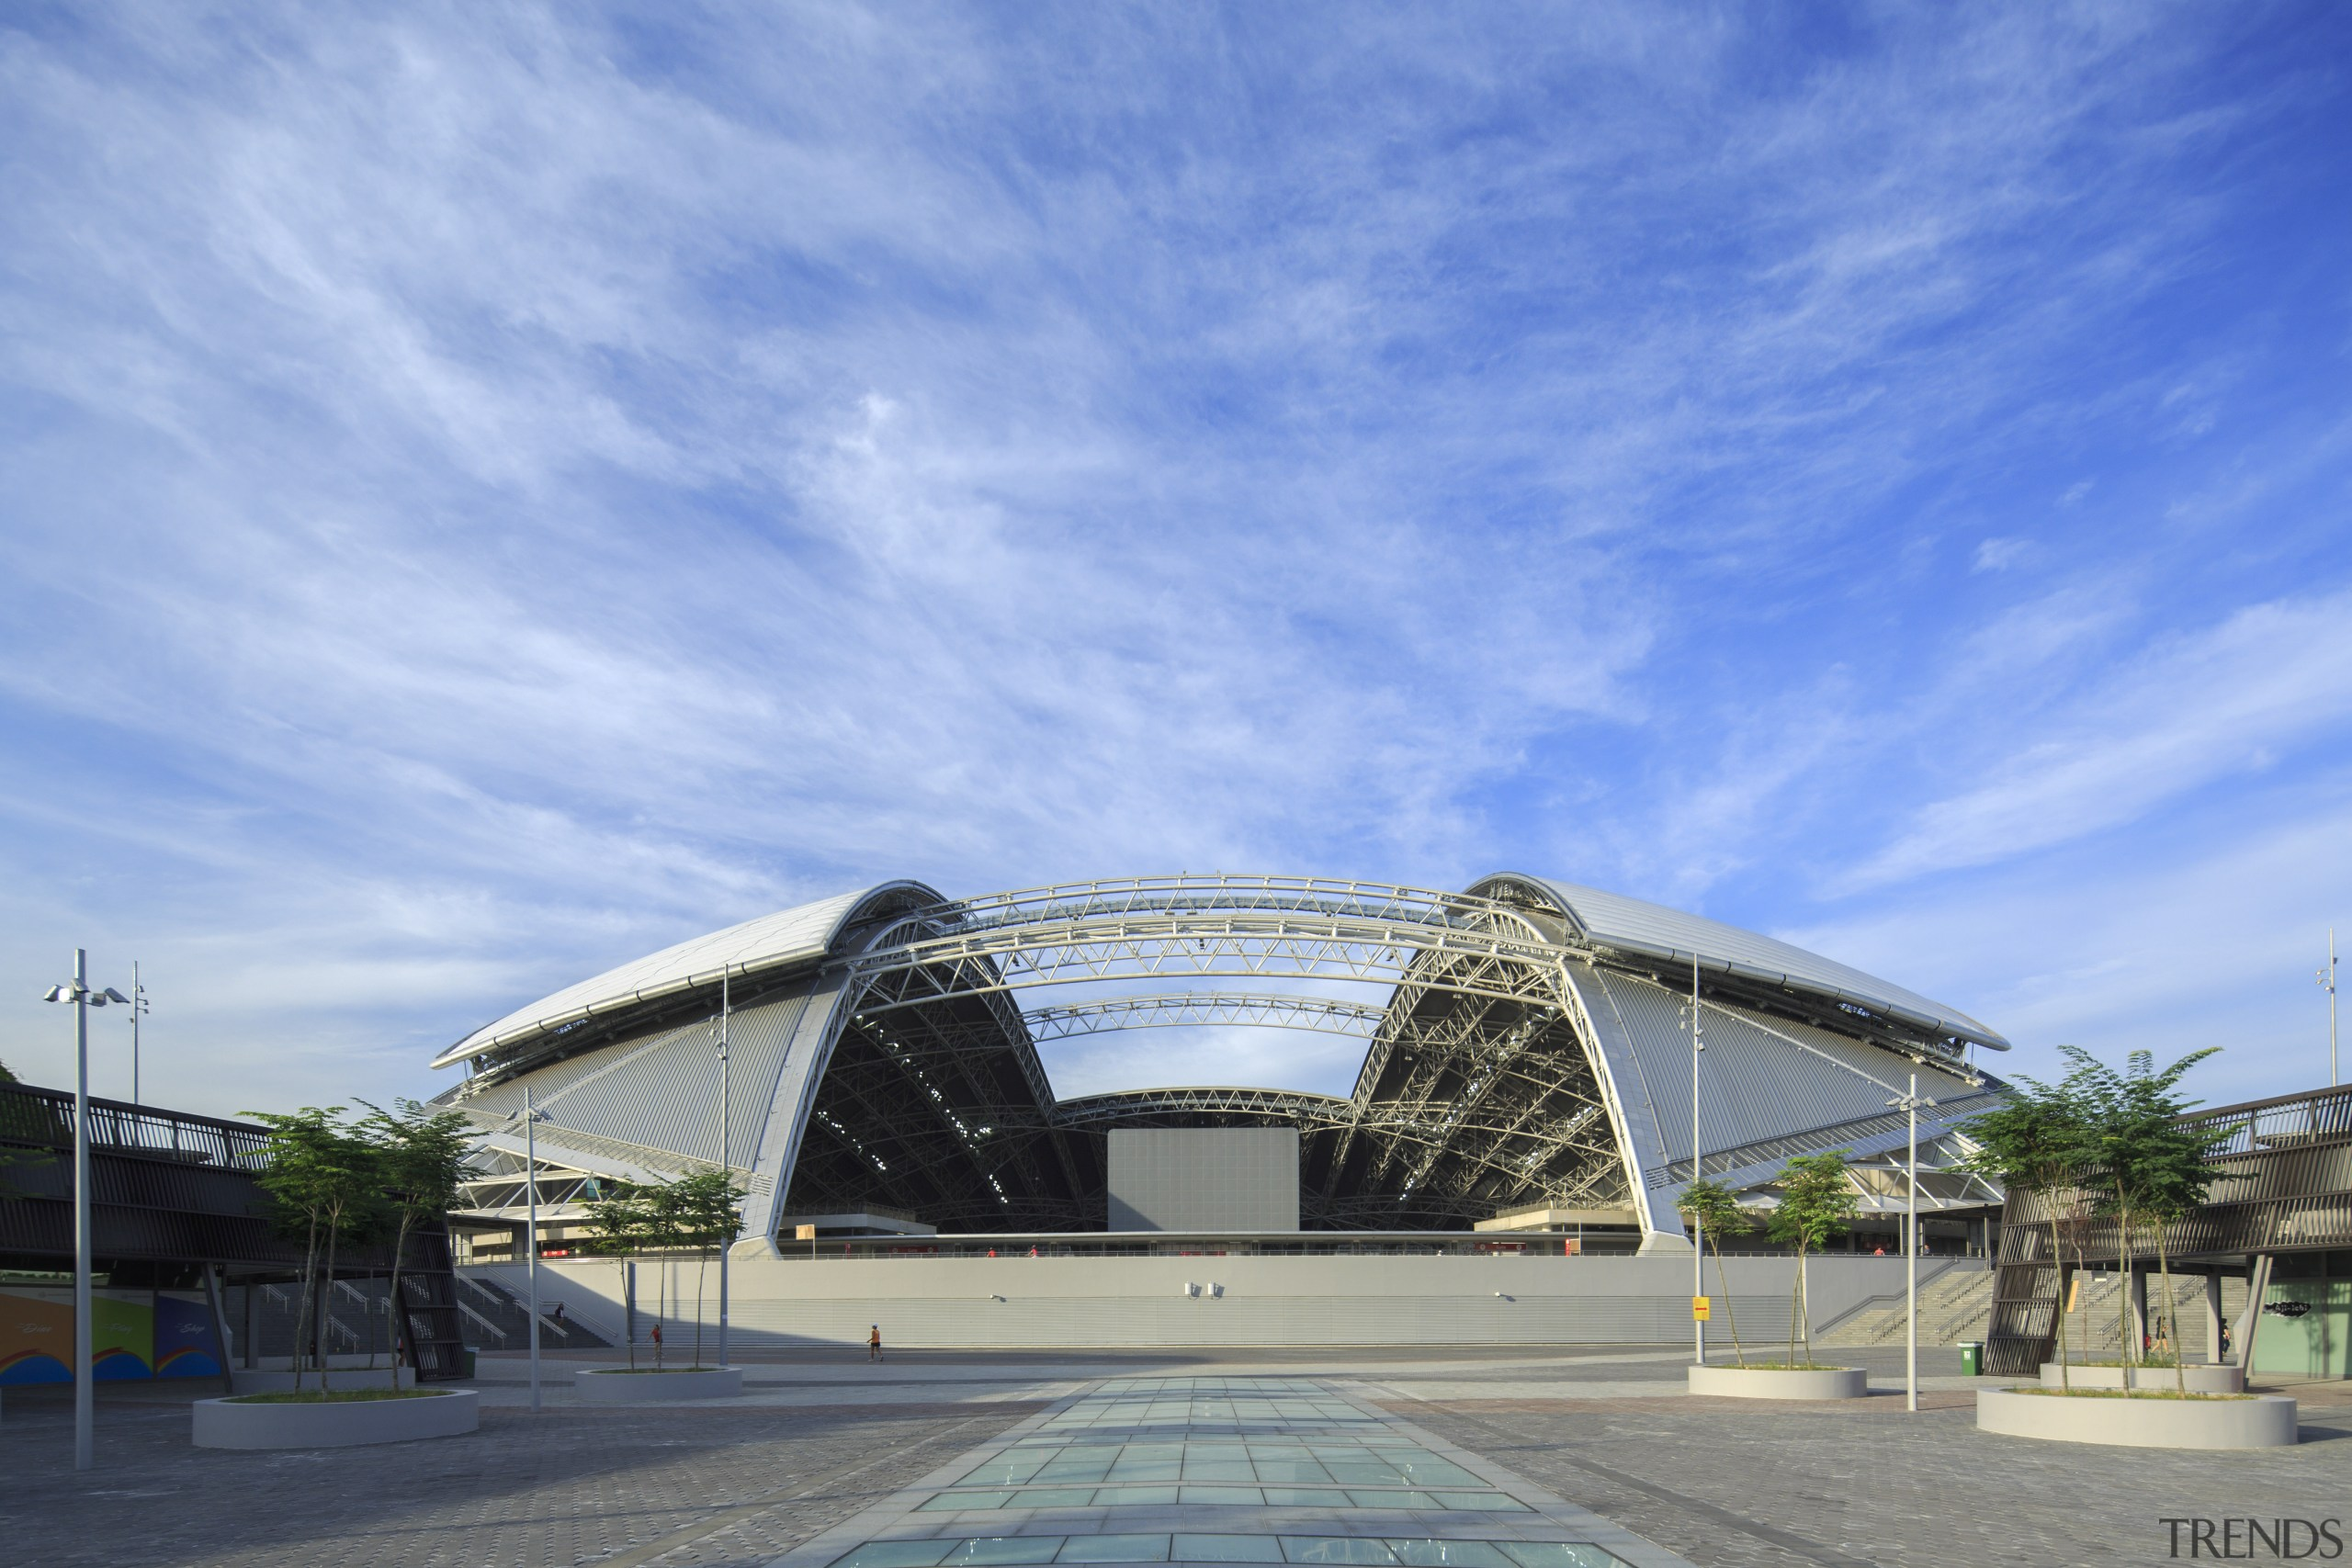 The dome of the main stadium at the architecture, building, cloud, convention center, corporate headquarters, daytime, fixed link, landmark, metropolitan area, sky, sport venue, structure, teal